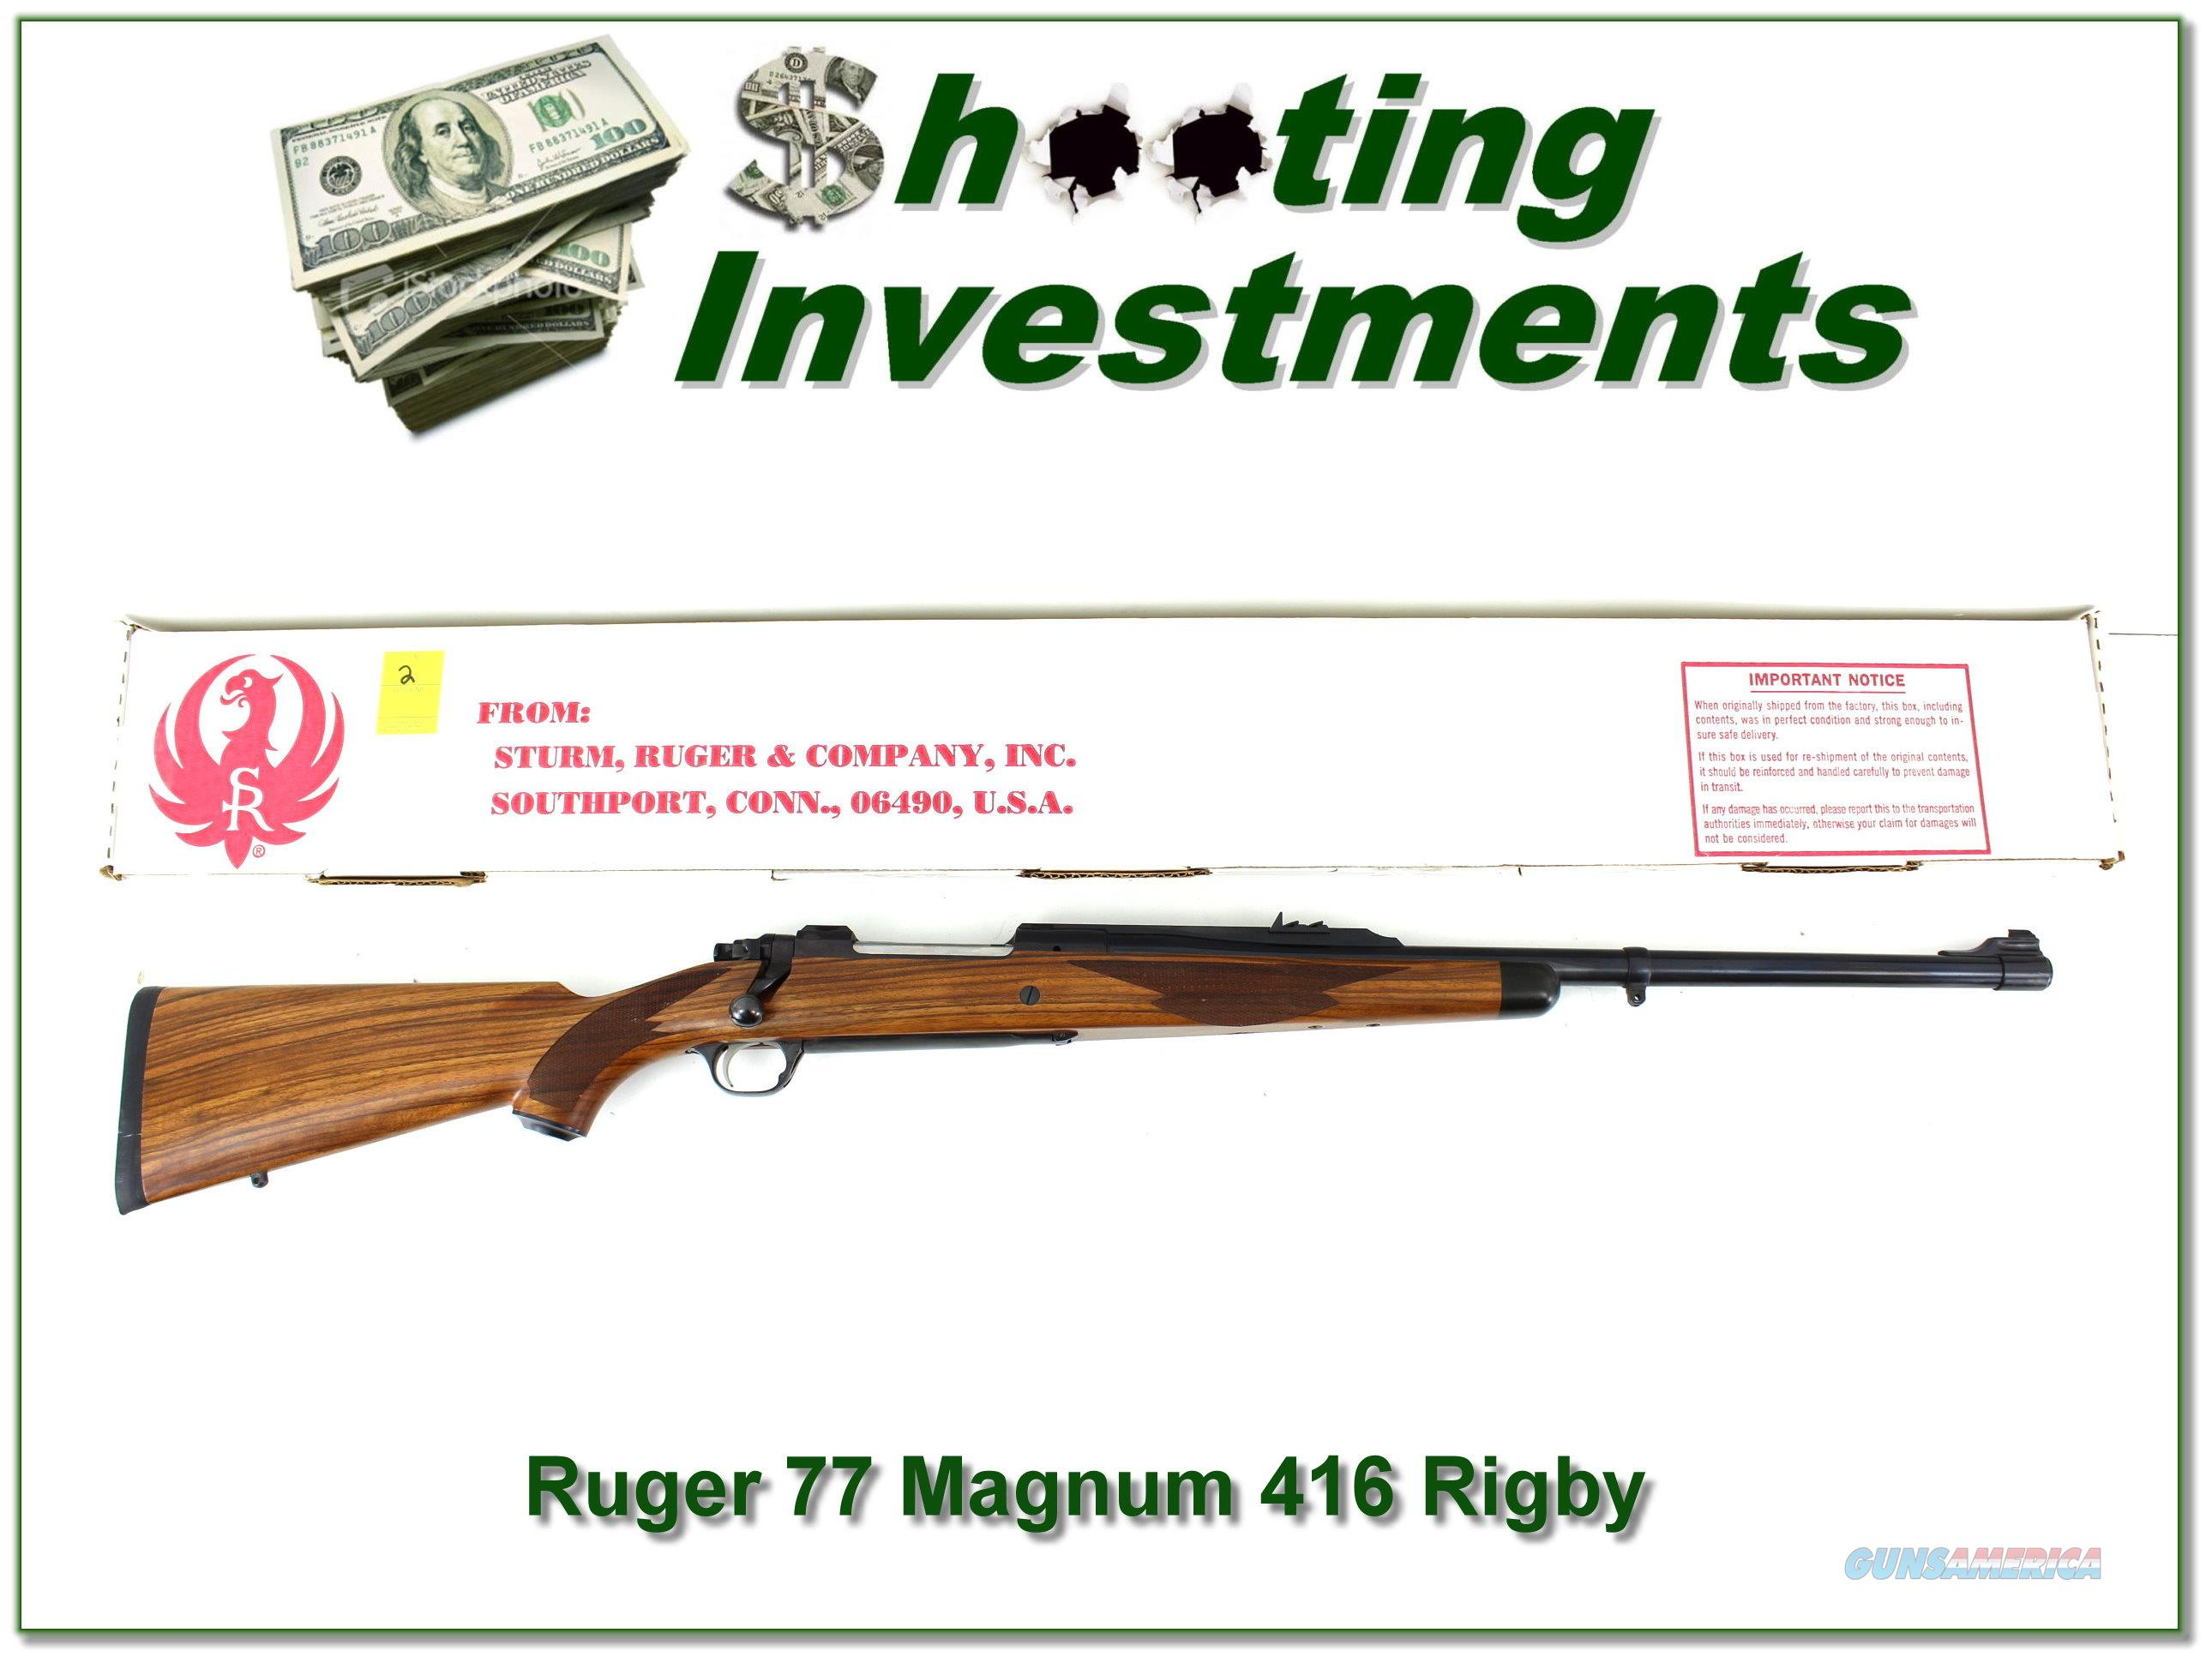 Ruger 77 RSM 416 Rigby Safari in box!  Guns > Rifles > Ruger Rifles > Model 77